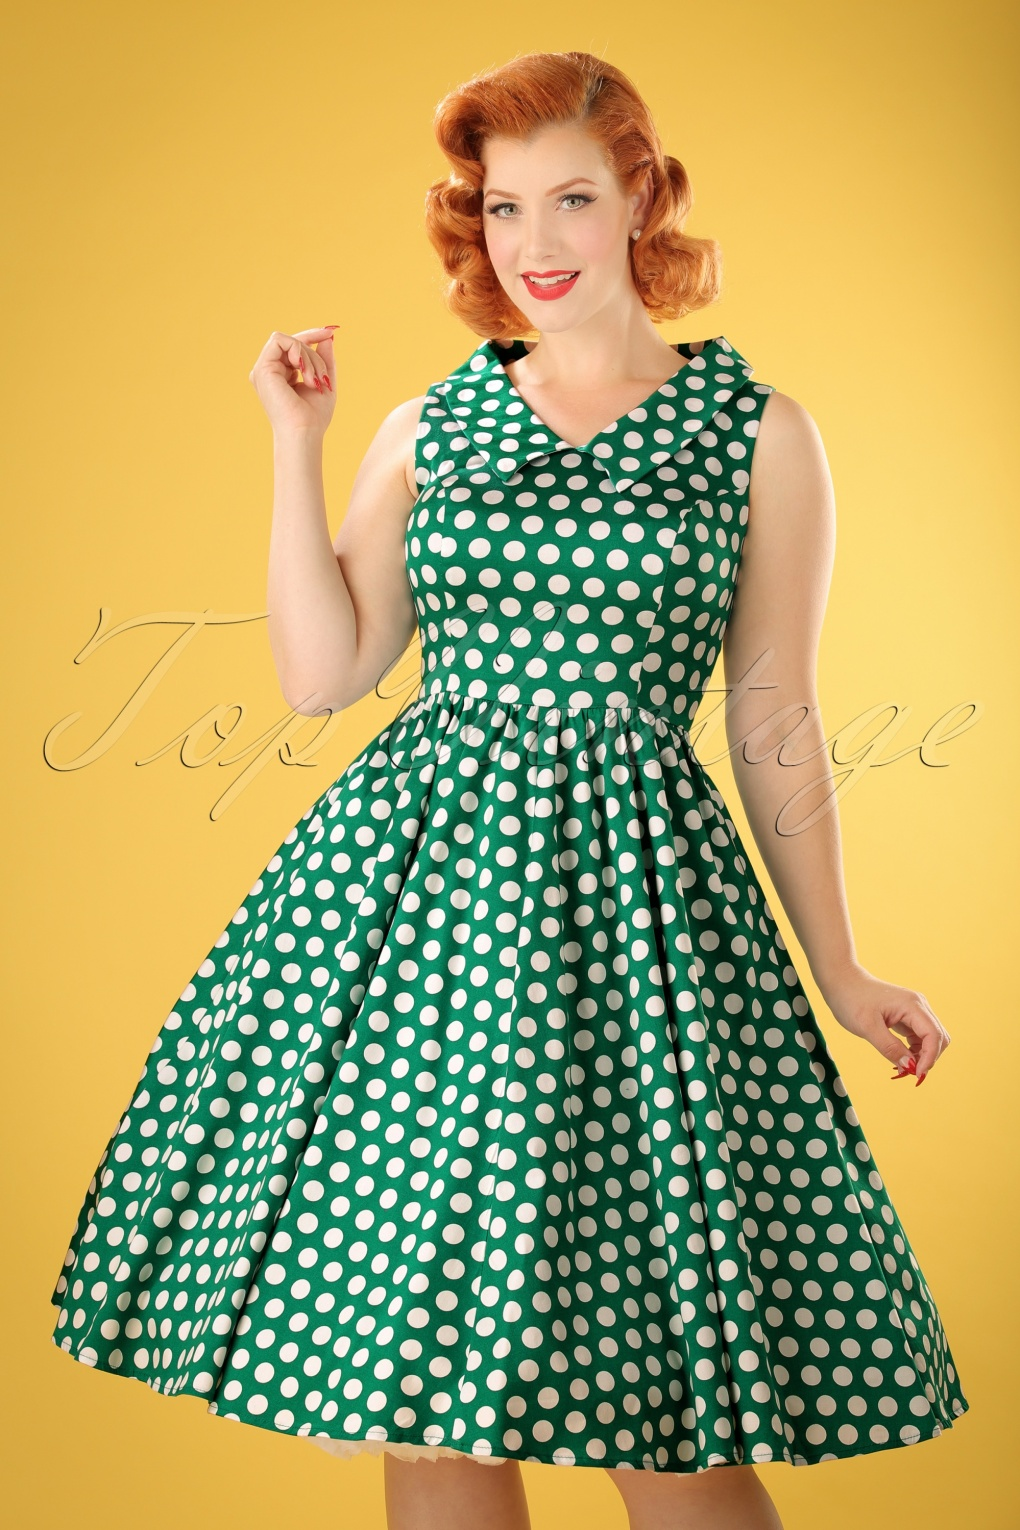 1940s Pinup Dresses for Sale 50s Tracy Polkadot Swing Dress in Dark Green £24.81 AT vintagedancer.com